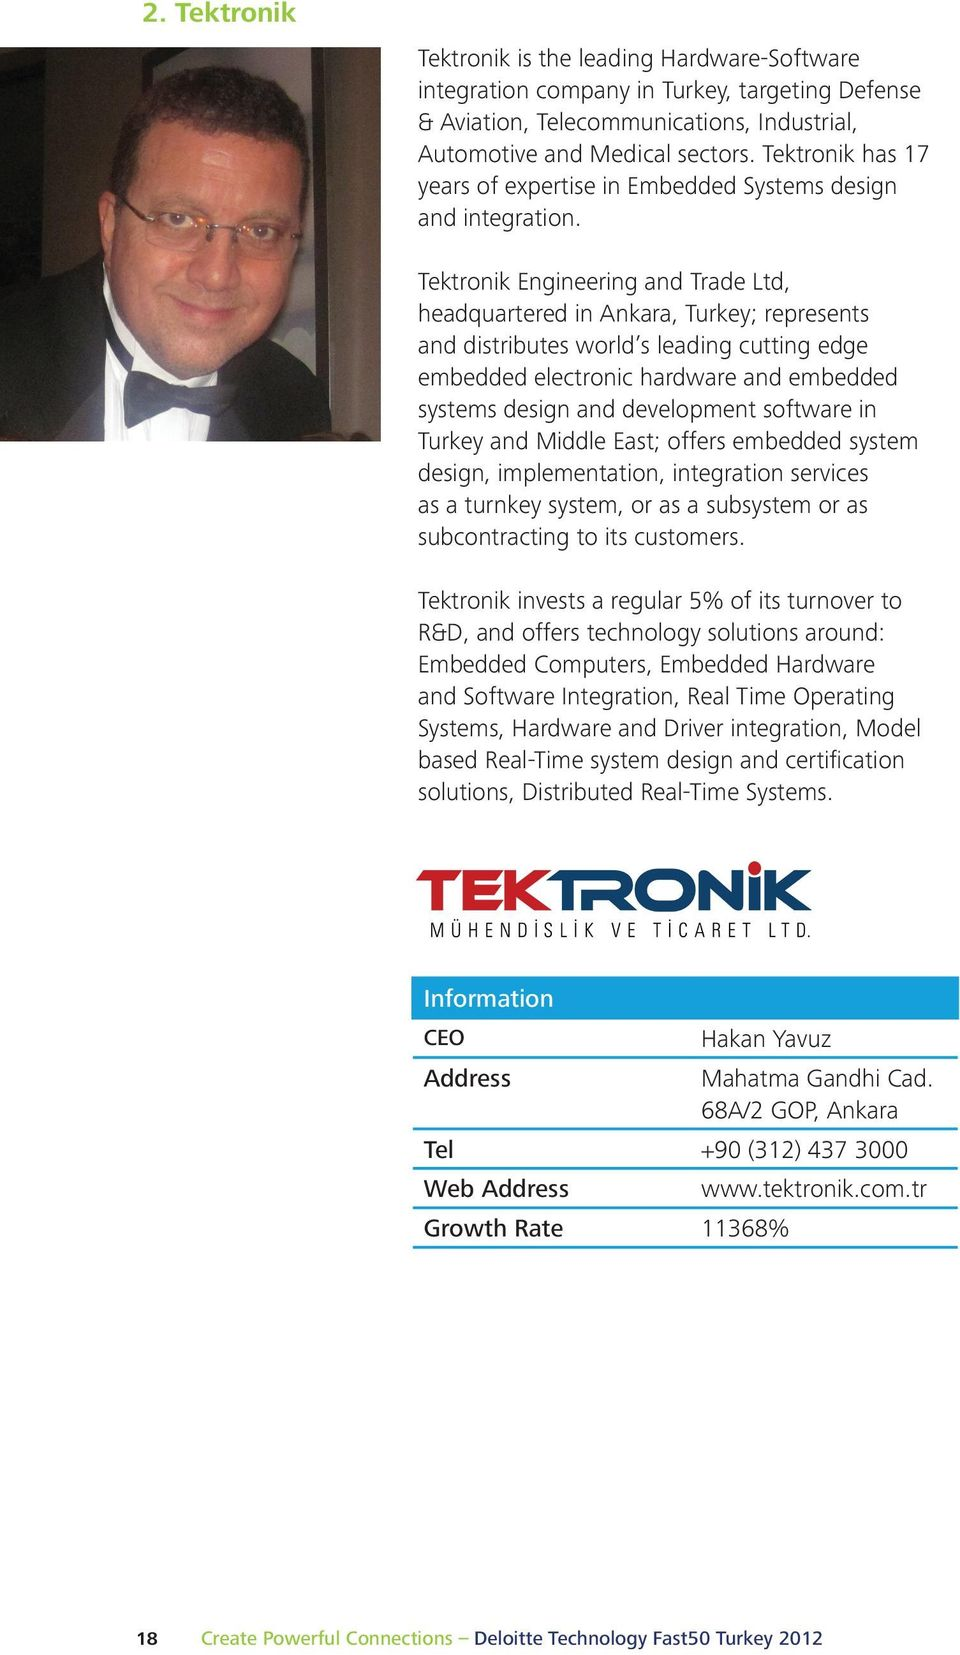 Tektronik Engineering and Trade Ltd, headquartered in Ankara, Turkey; represents and distributes world s leading cutting edge embedded electronic hardware and embedded systems design and development